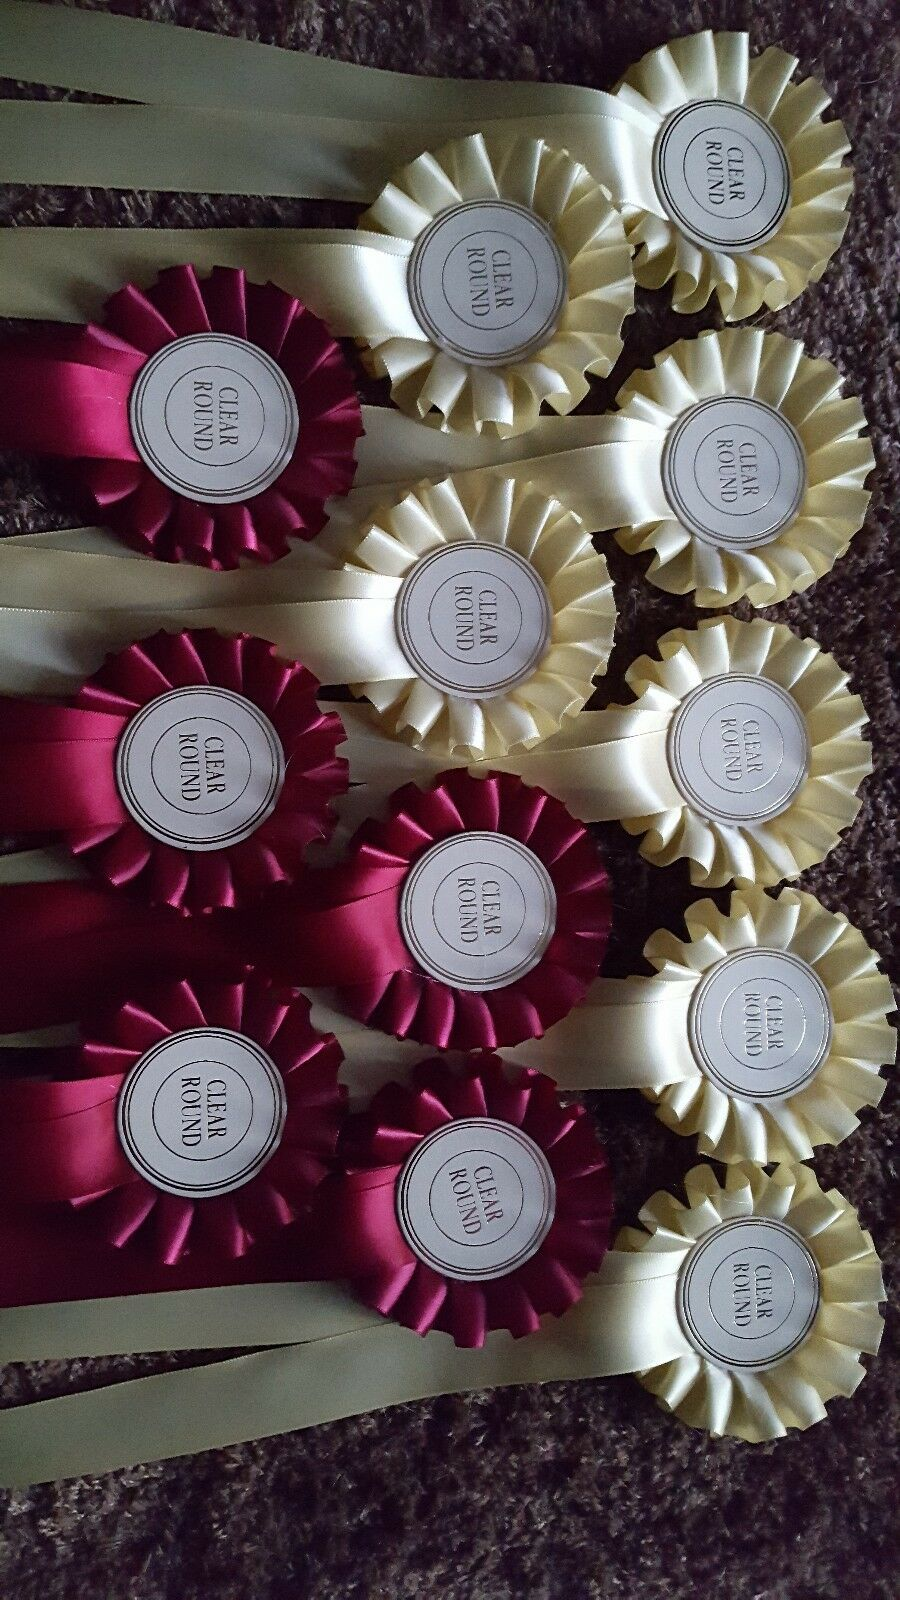 Equestrian pinkttes dog show poultry x 50